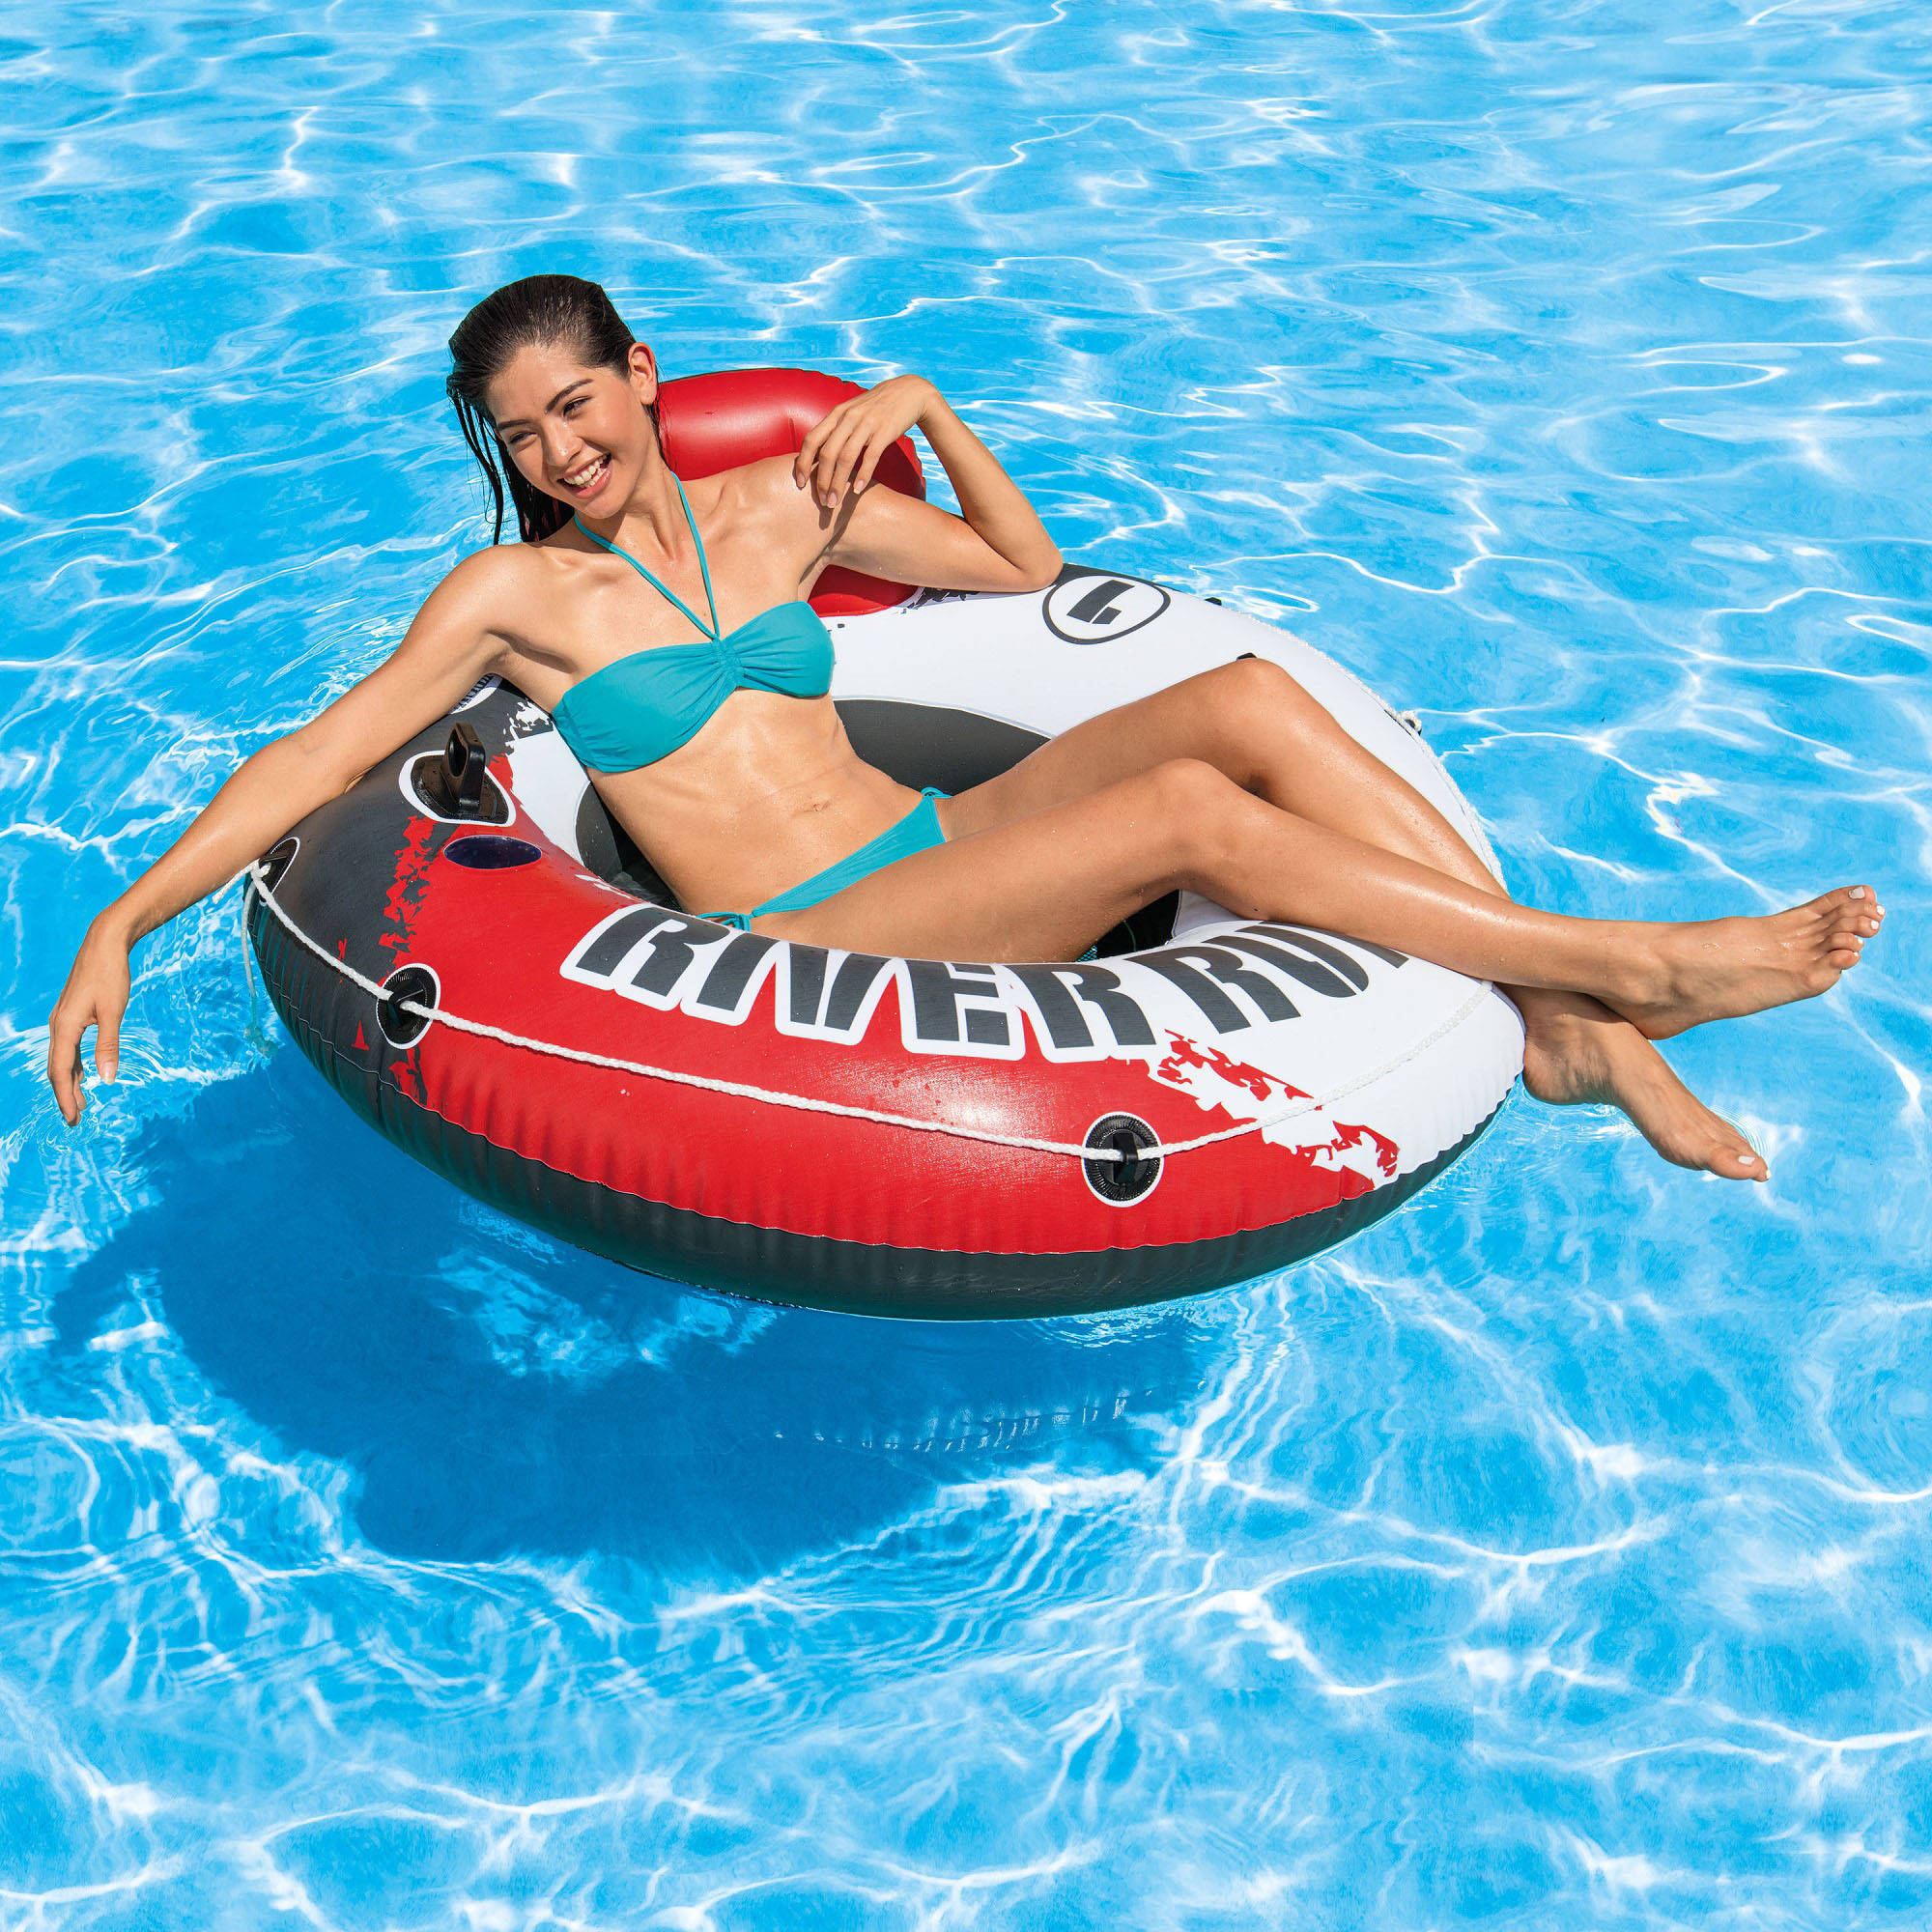 Intex Inflatable Red River Run I Pool Tube, 53""